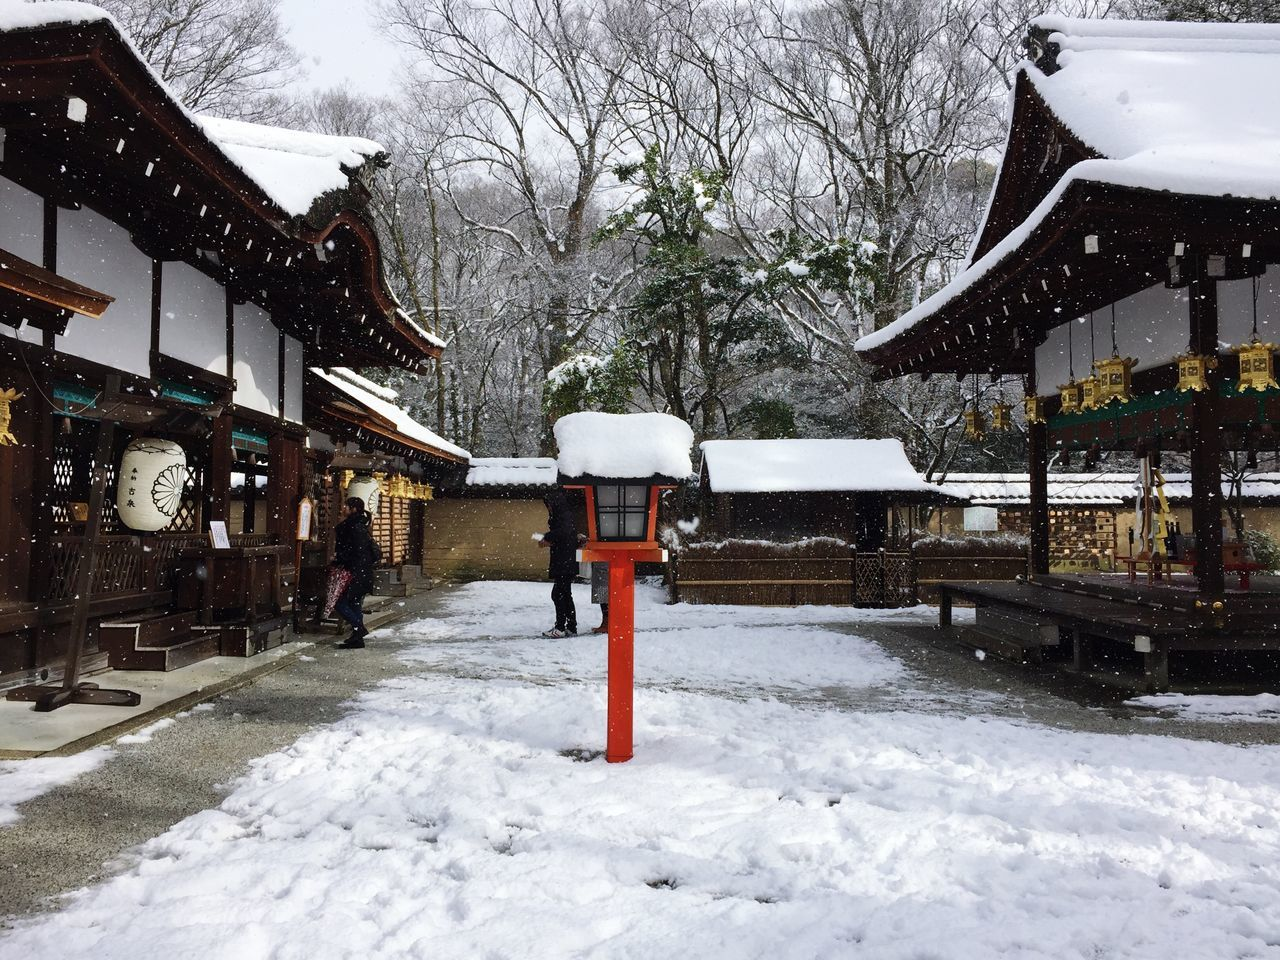 河合神社 Snow Winter Cold Temperature Weather Tree Outdoors Built Structure Architecture Nature Building Exterior Day Snowing No People Snowing ❄ Snow ❄ Sky Tree Winter Nature Snowing Day